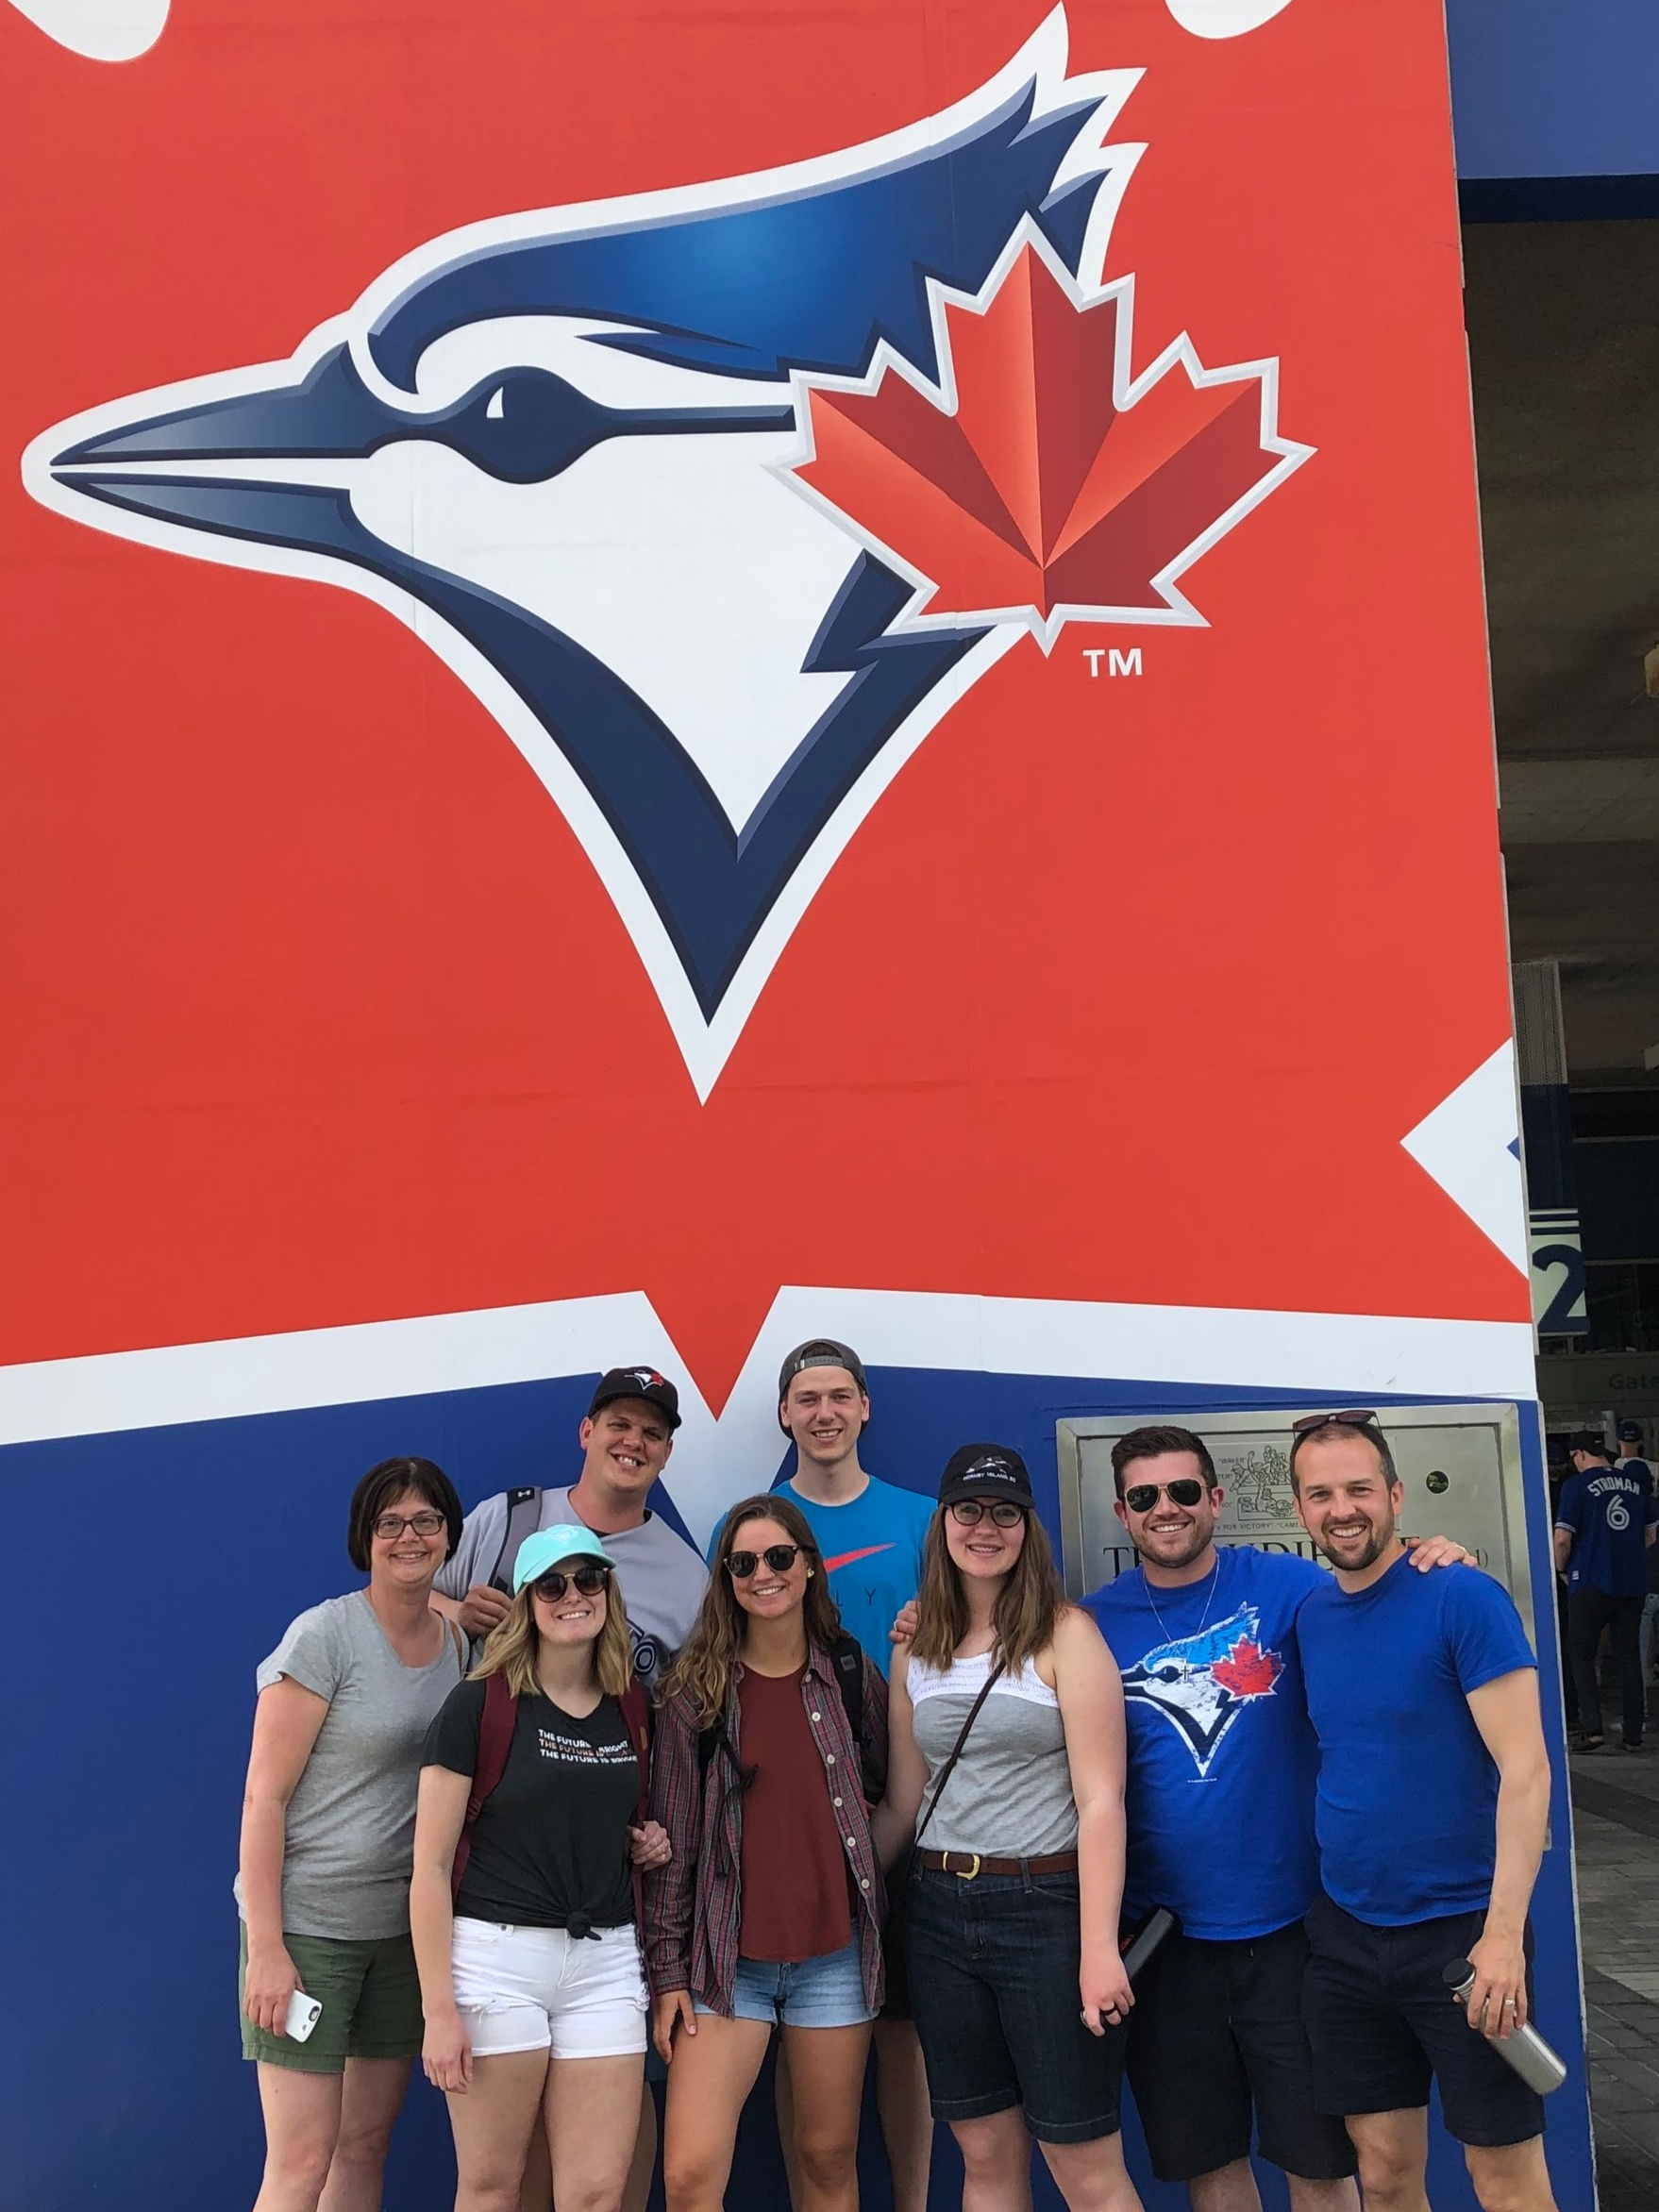 A group of us took the bus to watch the Toronto Blue Jays play. My first time at Roger's Centre was awesome!